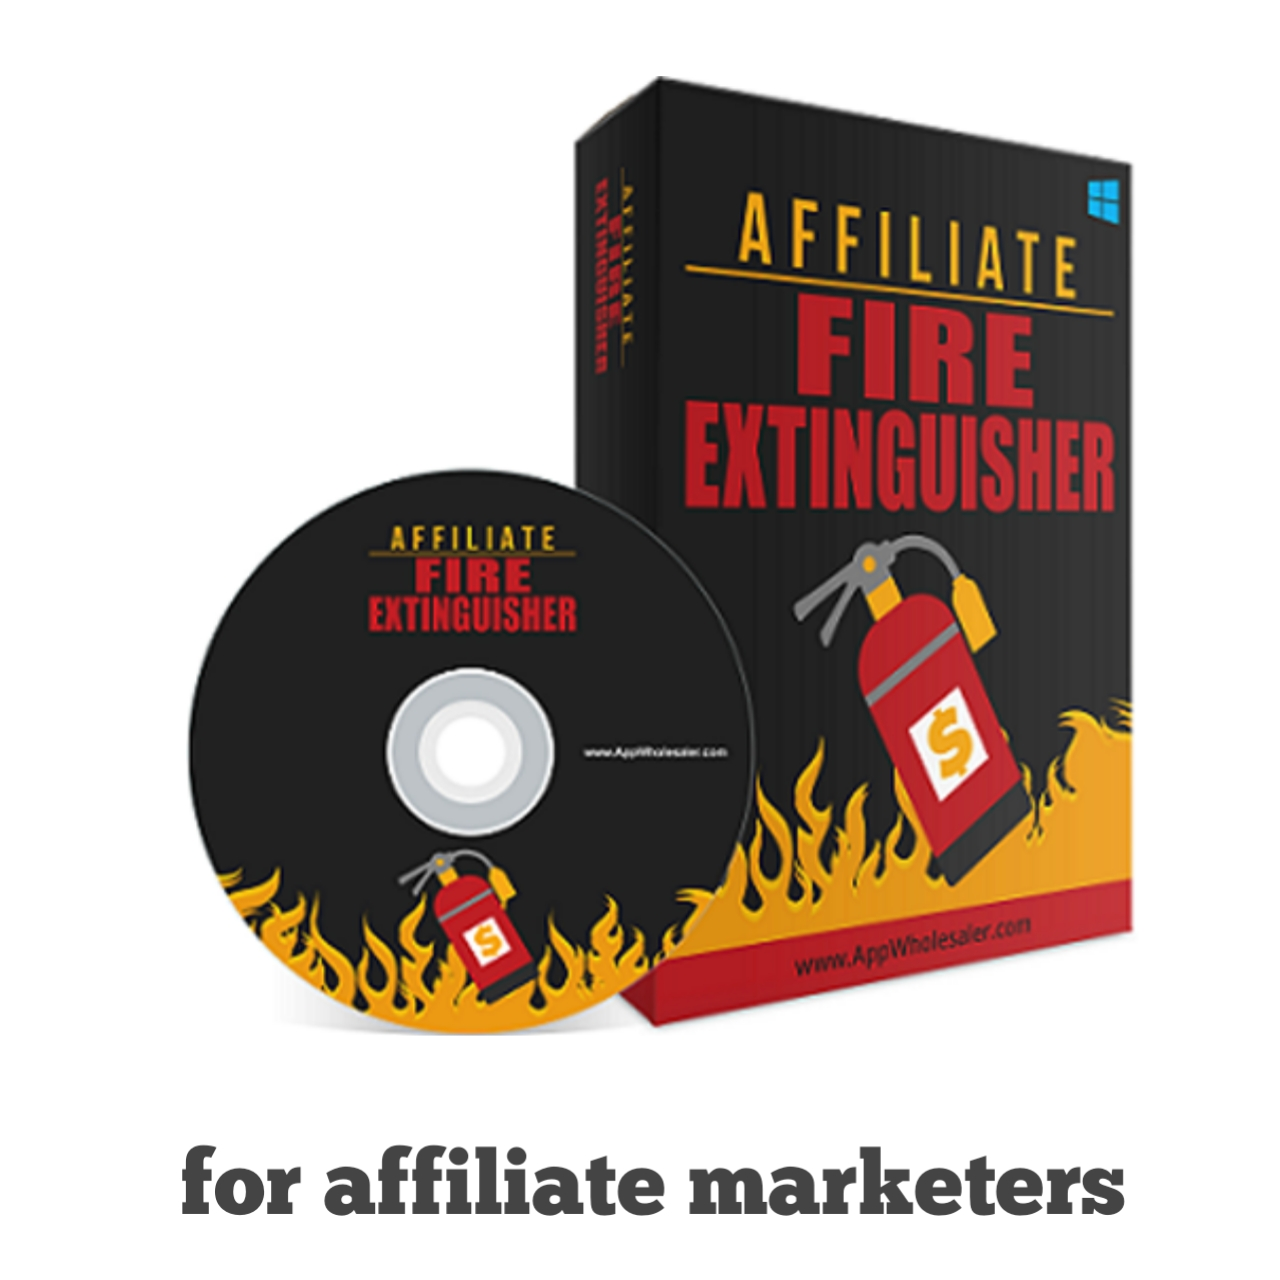 Affiliate Fire Extinguisher Very Effective